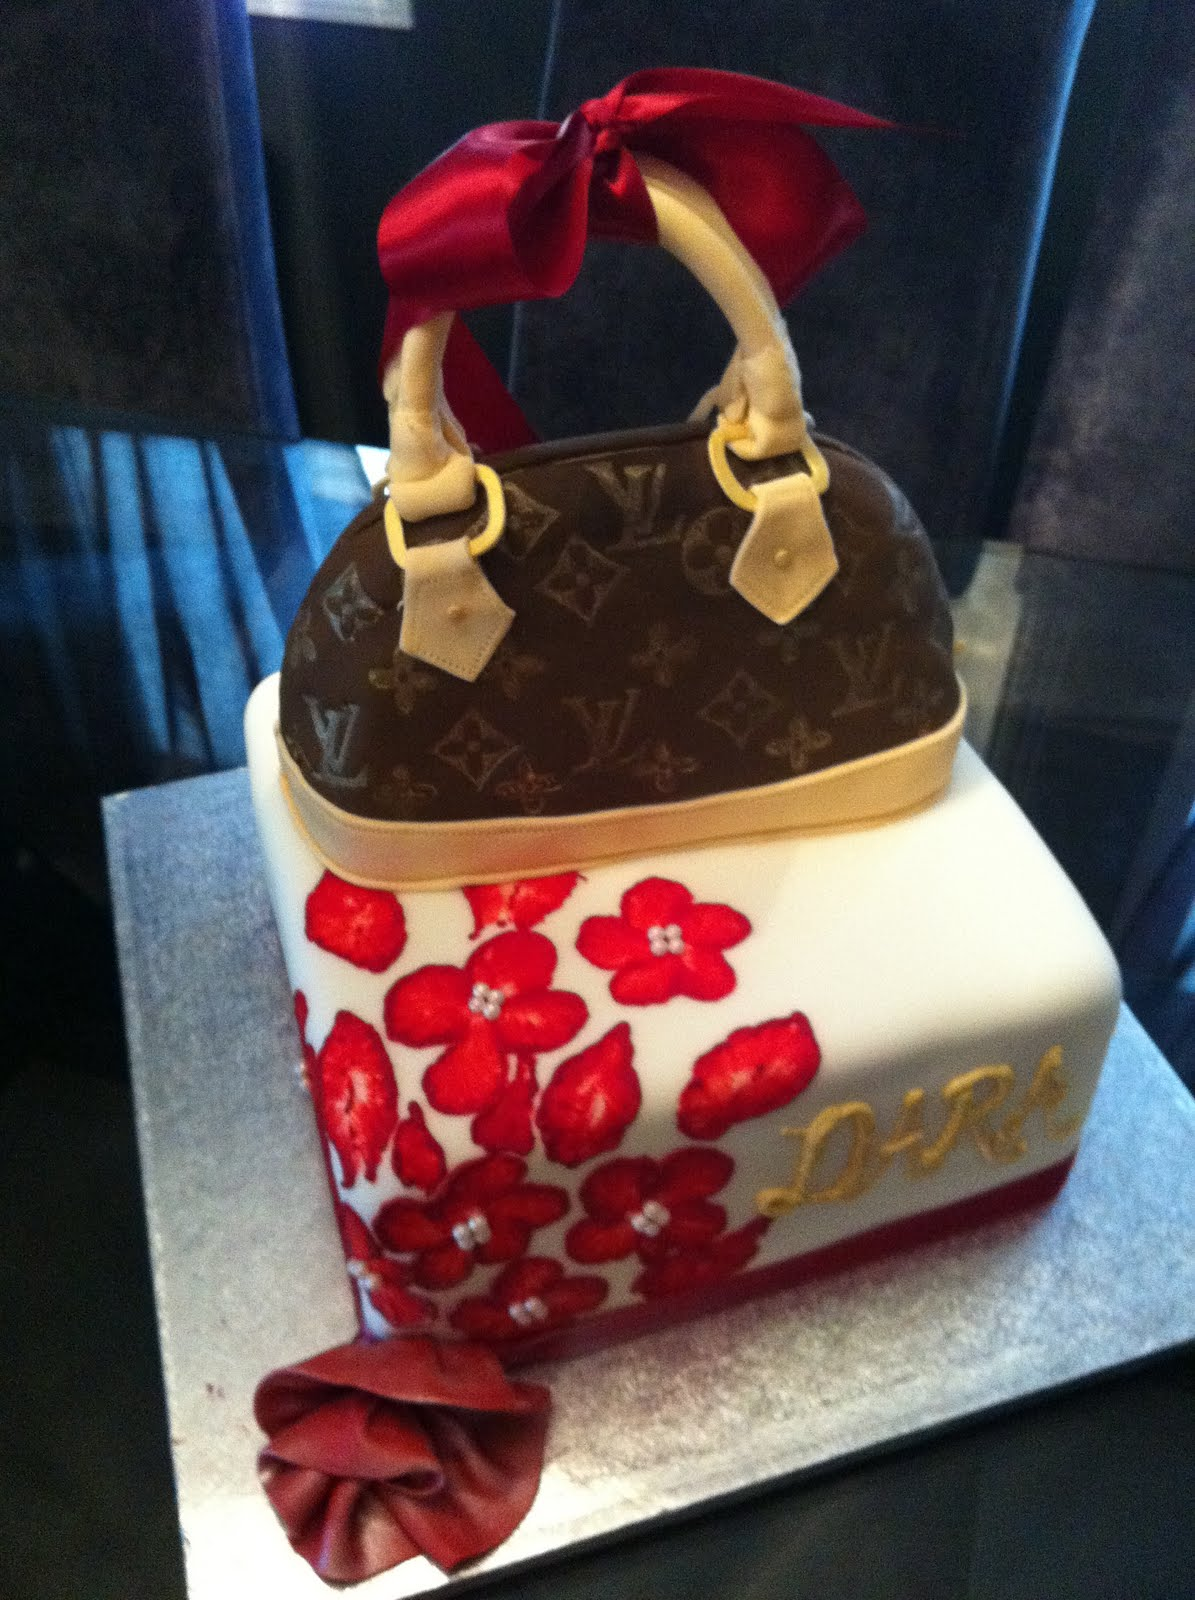 Jocelyns Wedding Cakes And More Louie Vuitton Purse Cake40th